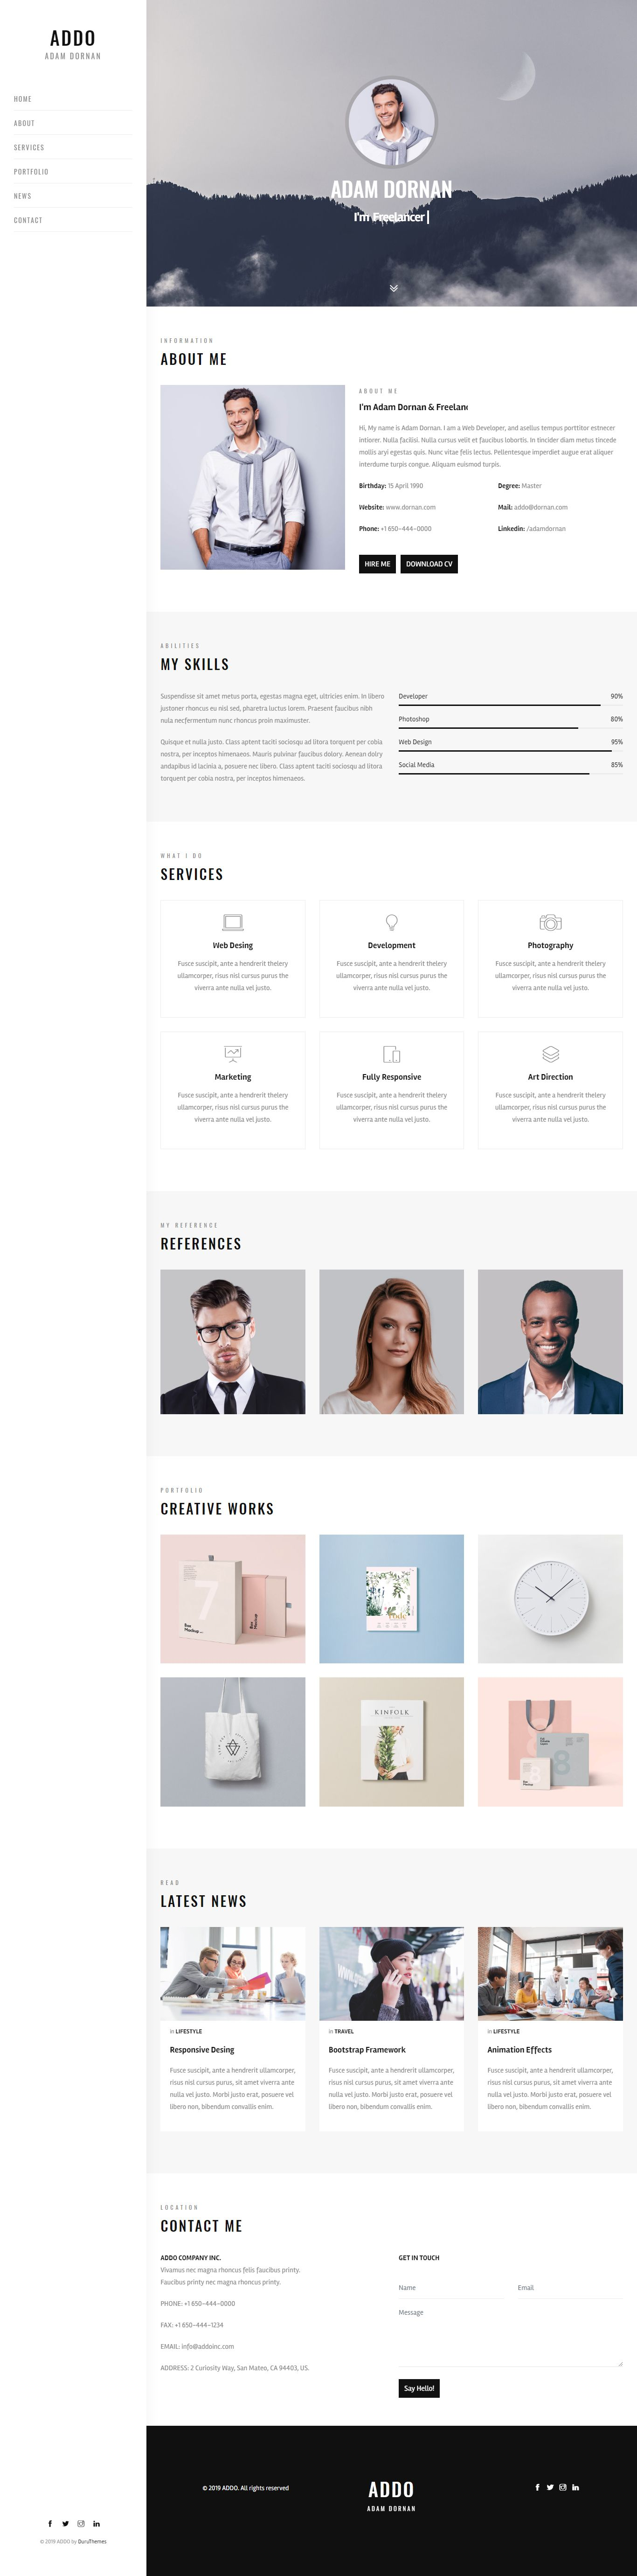 20++ Personal resume website template inspirations